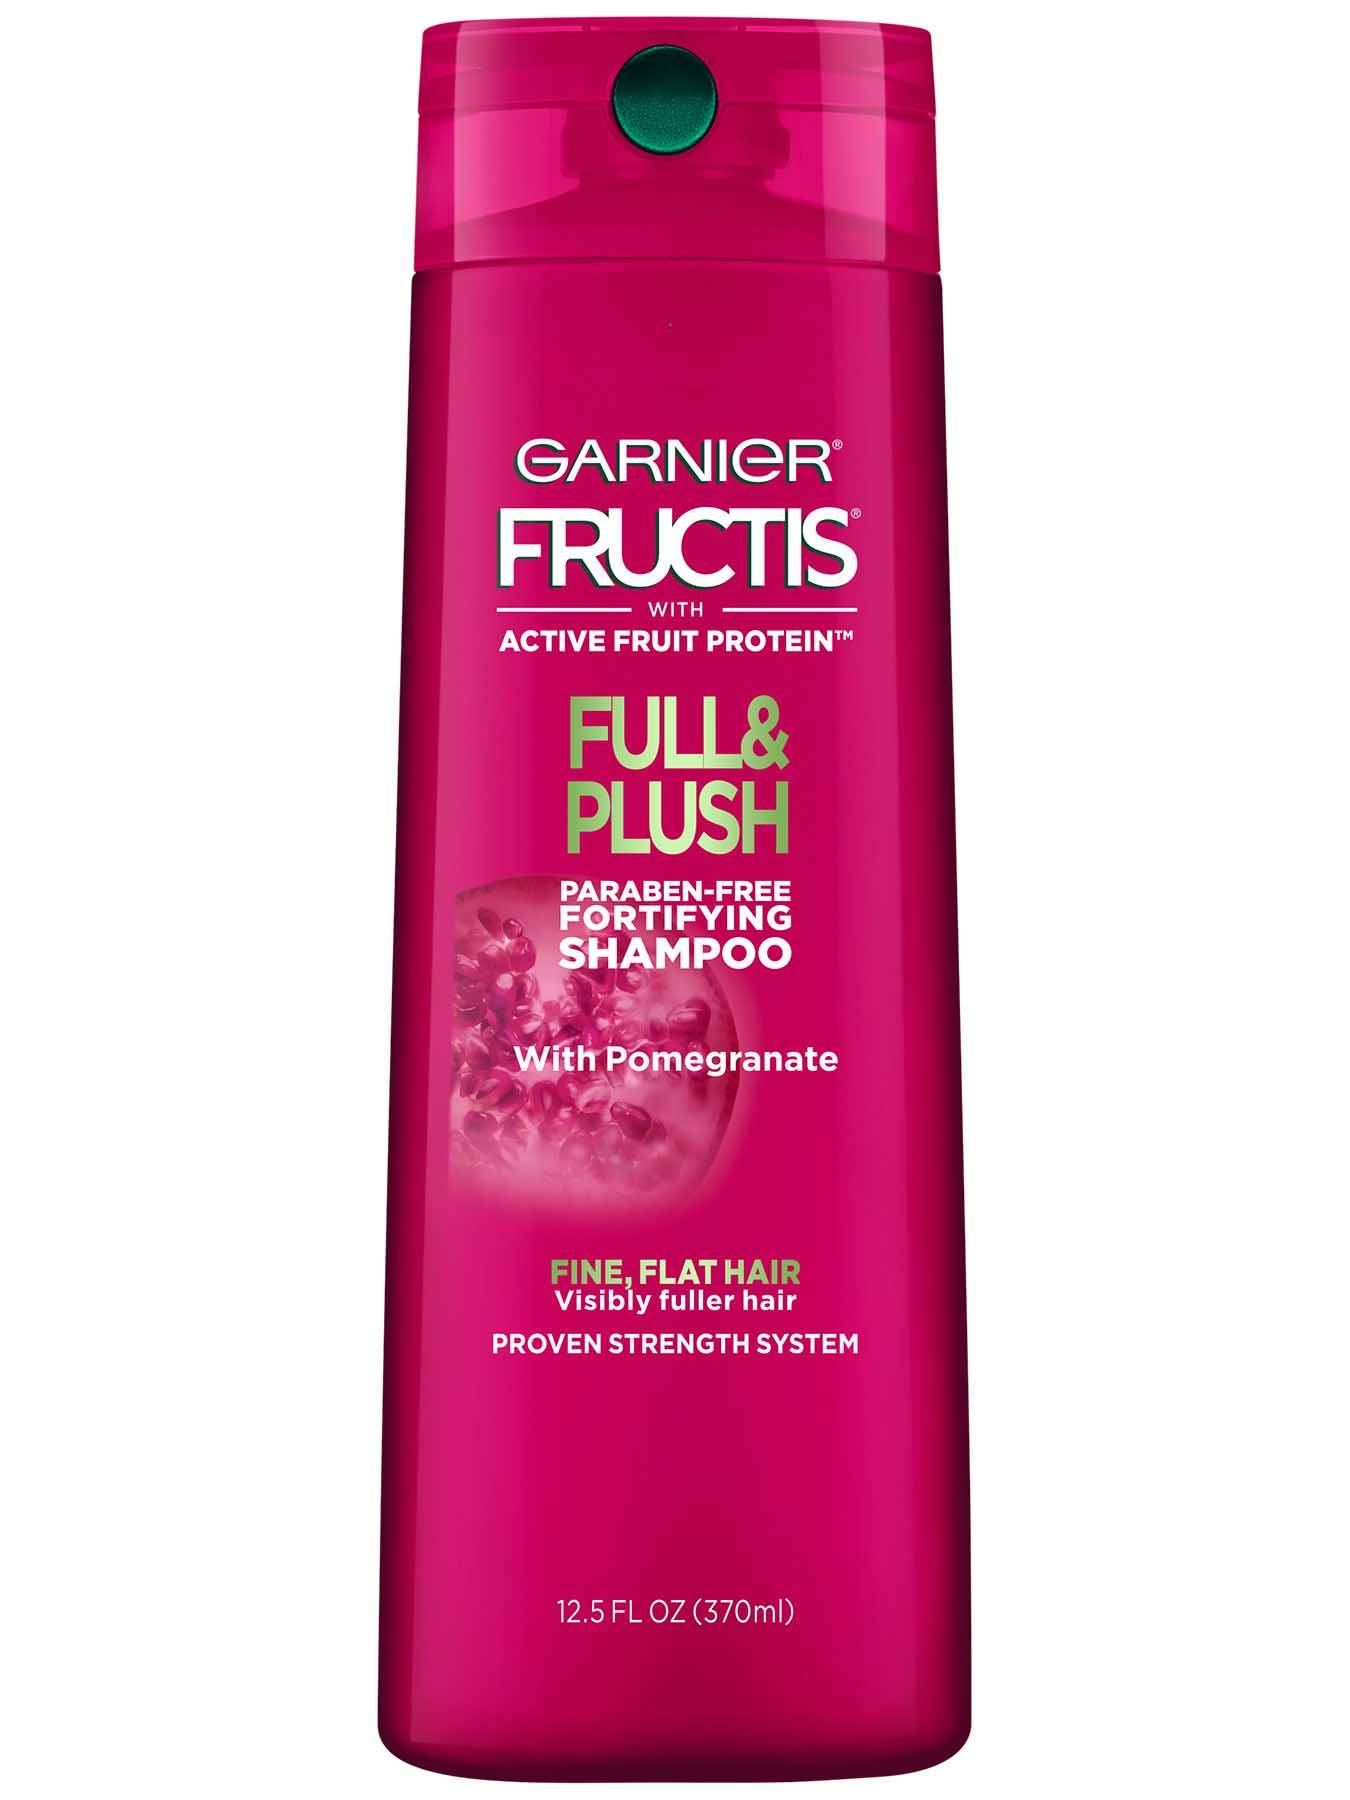 Garnier Fructis Full and Plush Shampoo Front Of Bottle